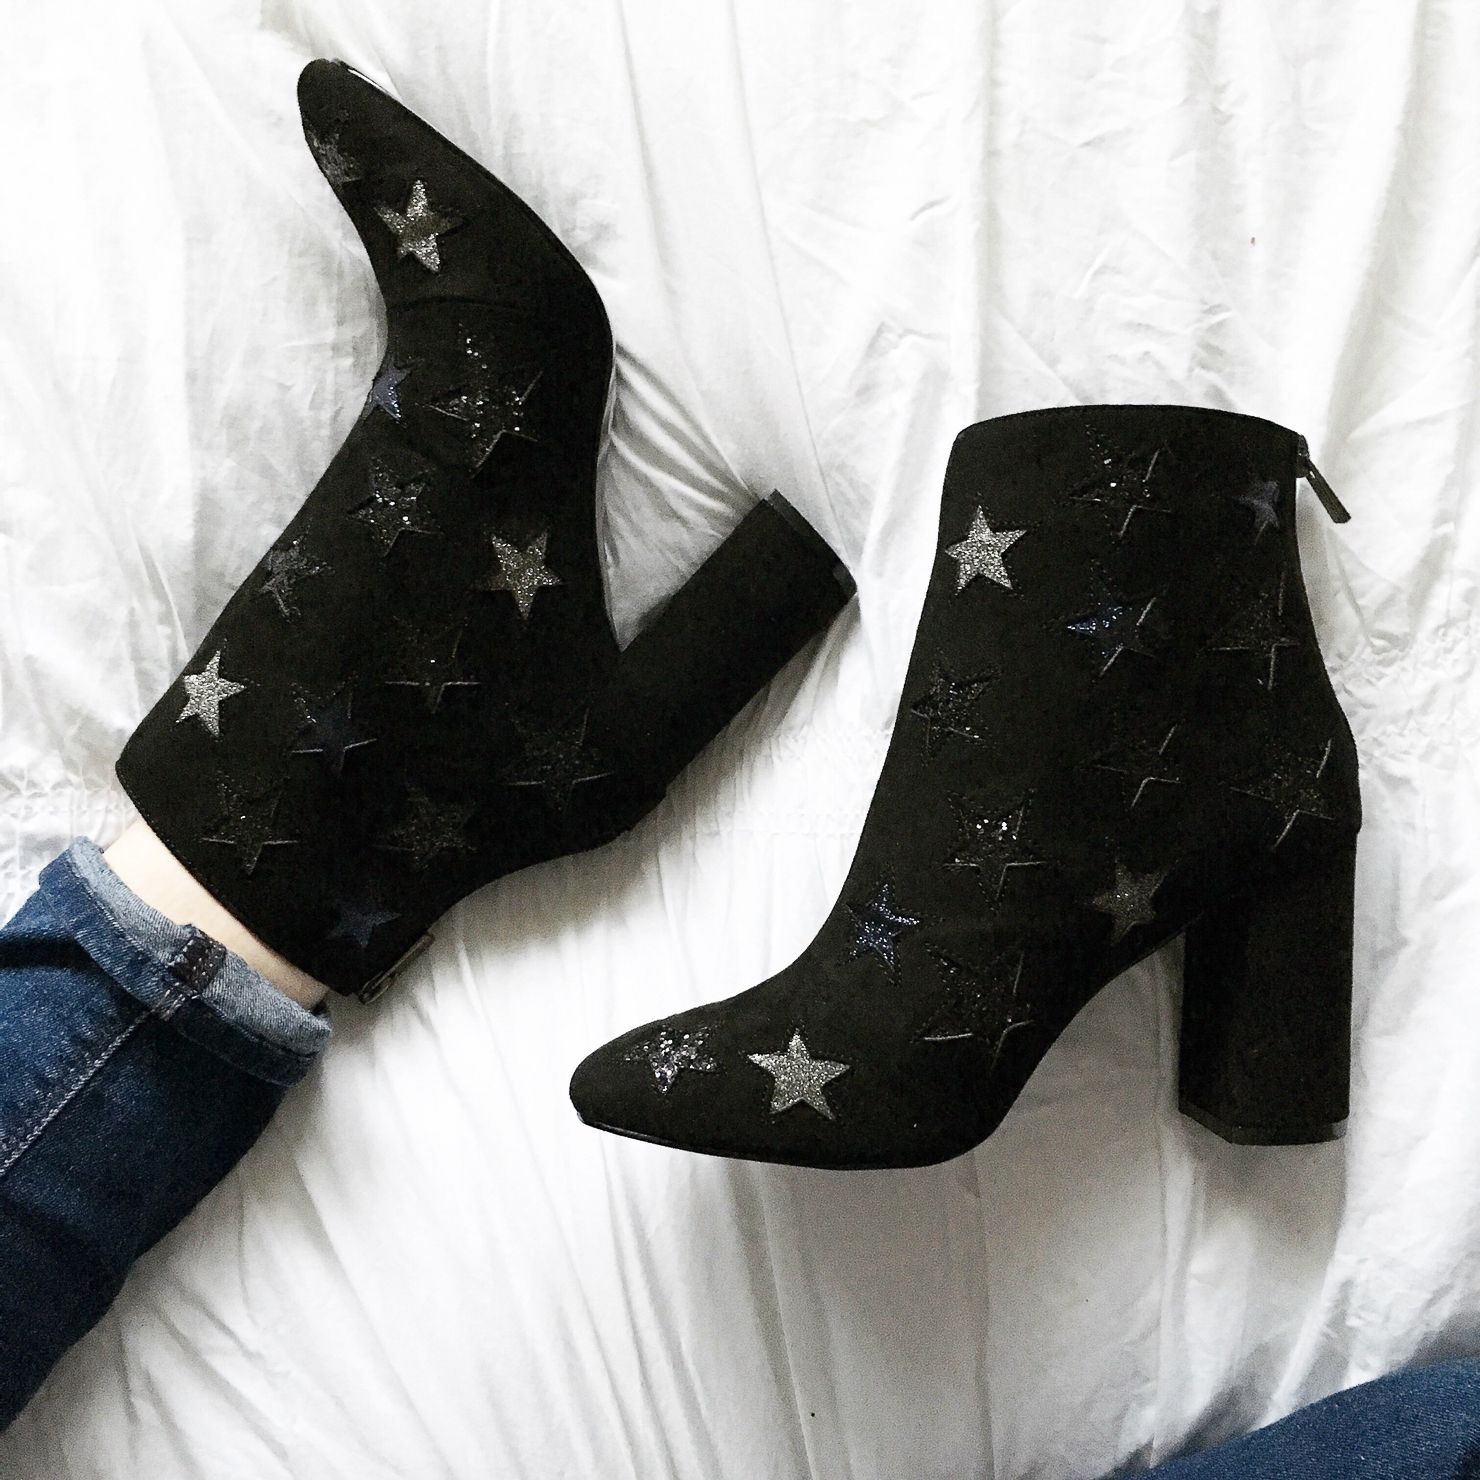 instagram-booties-with-star-applique-under-$100